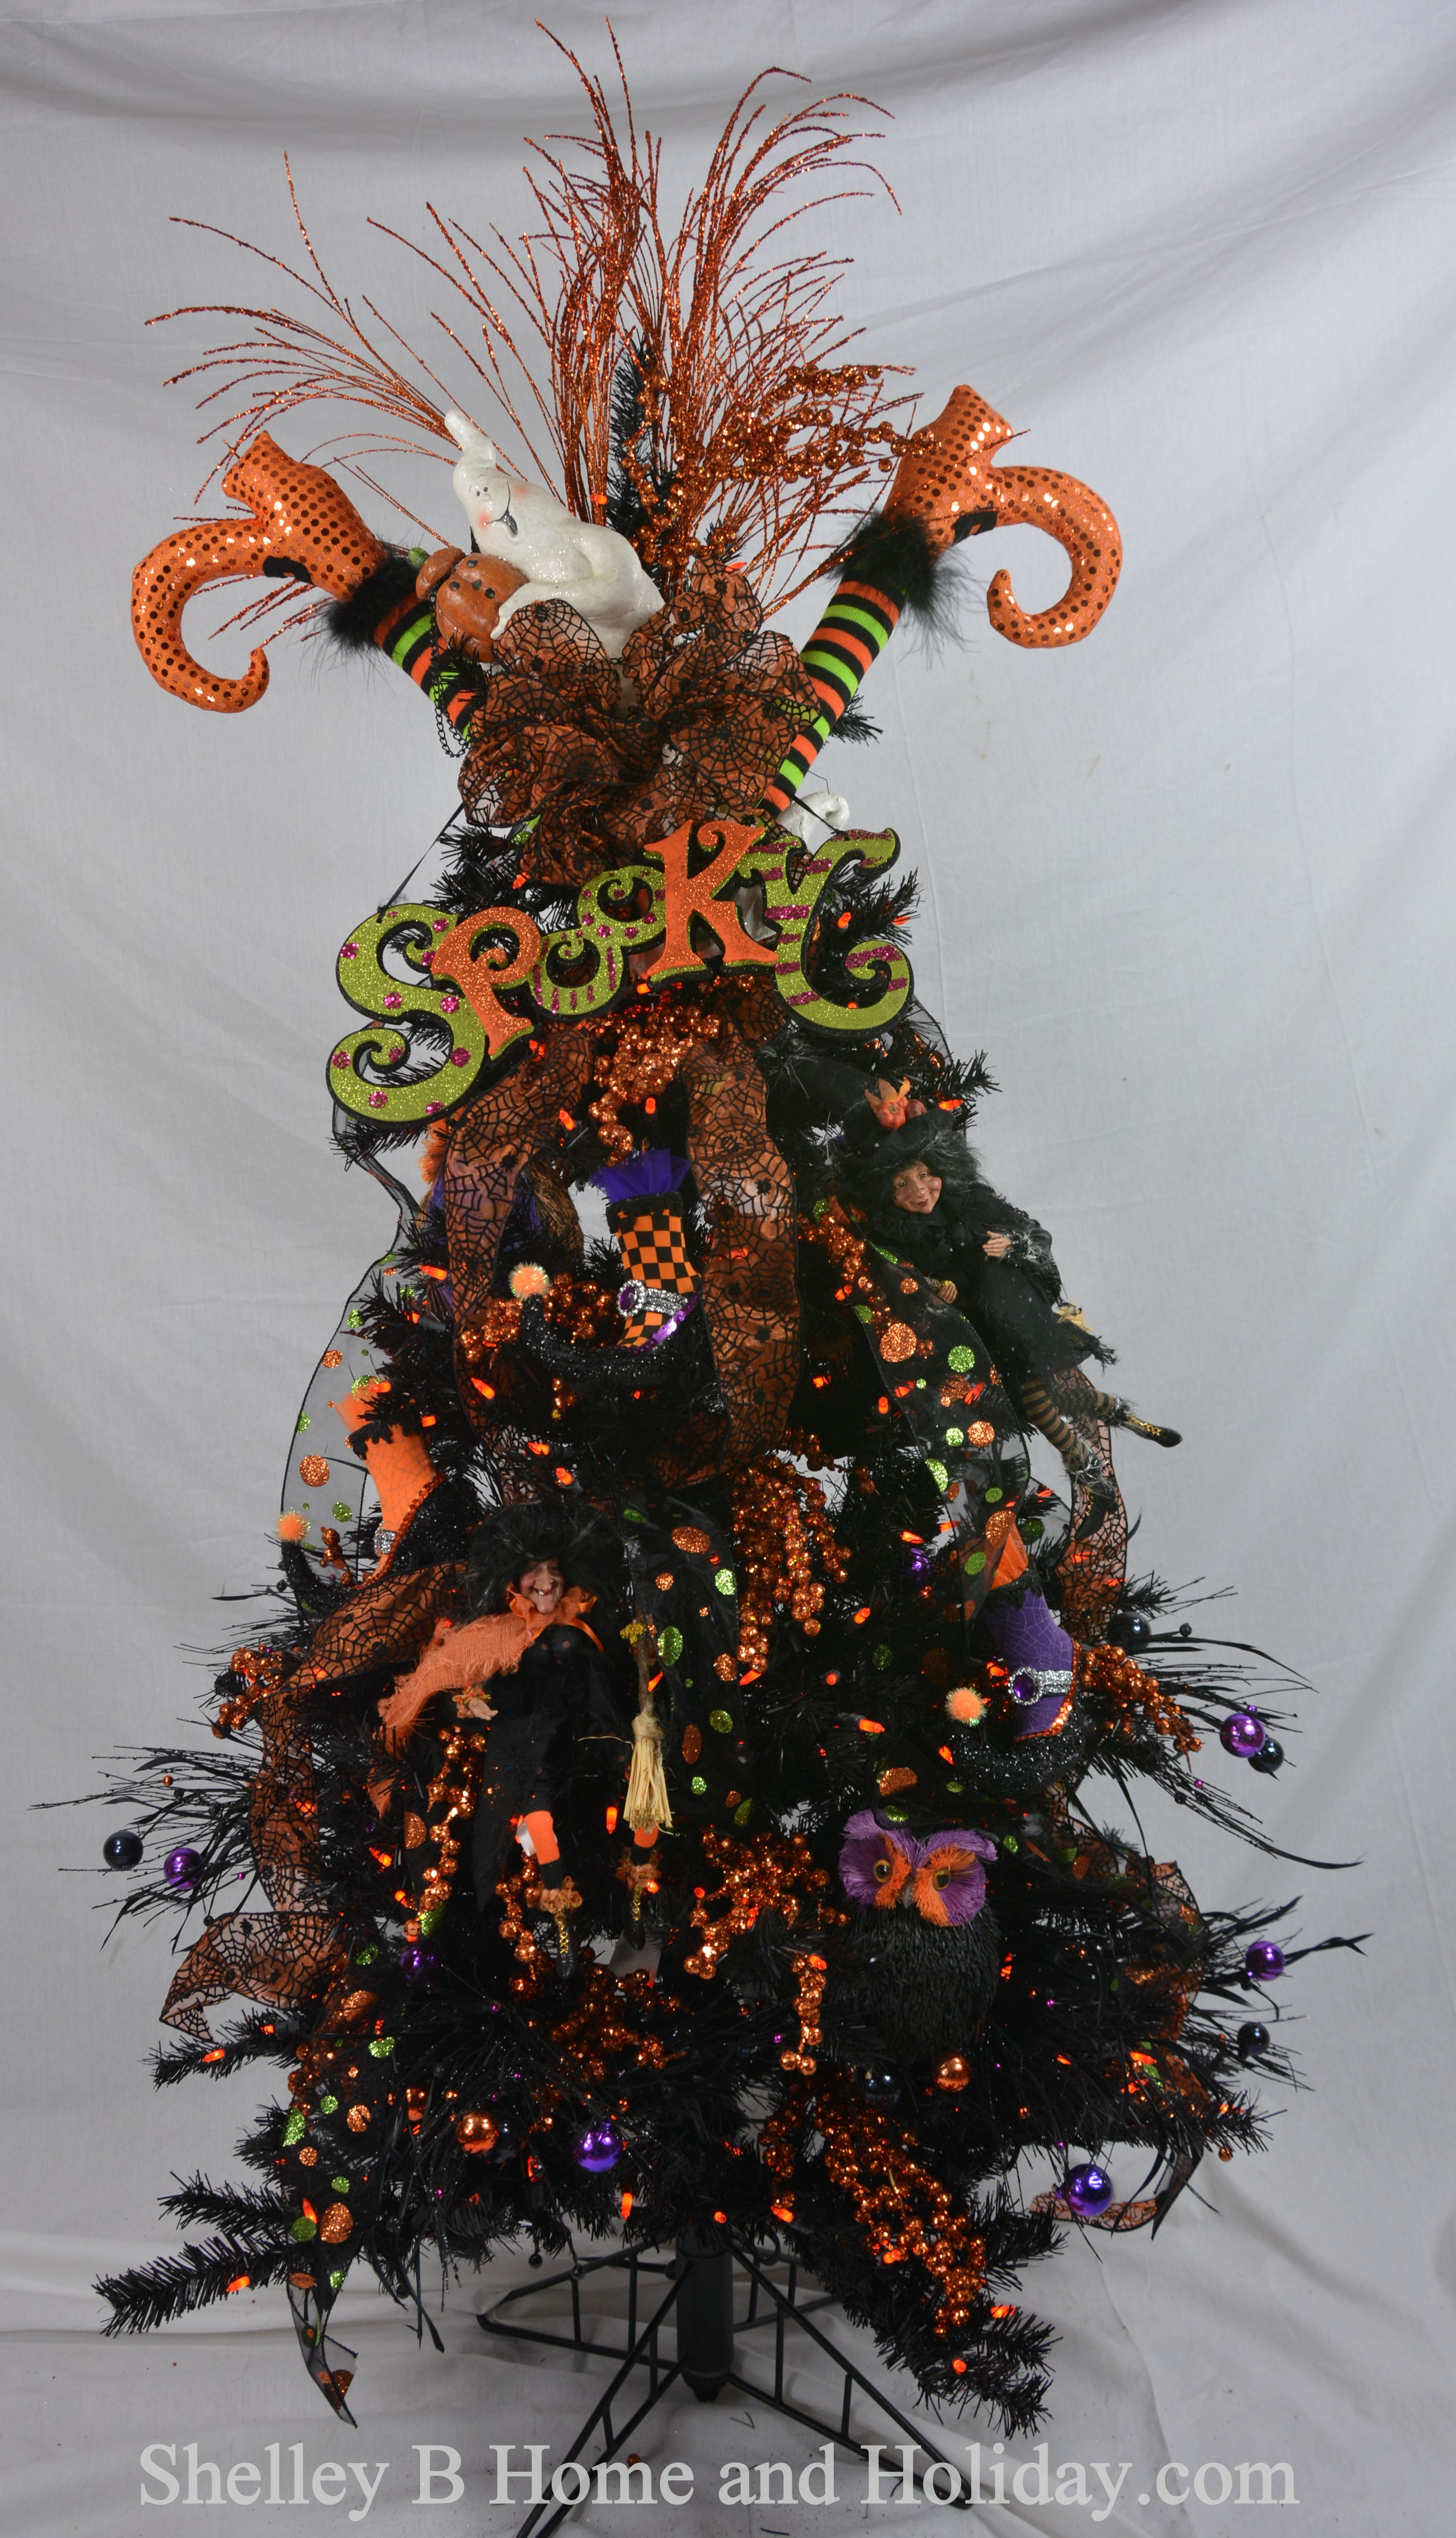 Shelley Ghost Top Halloween Tree Decorate